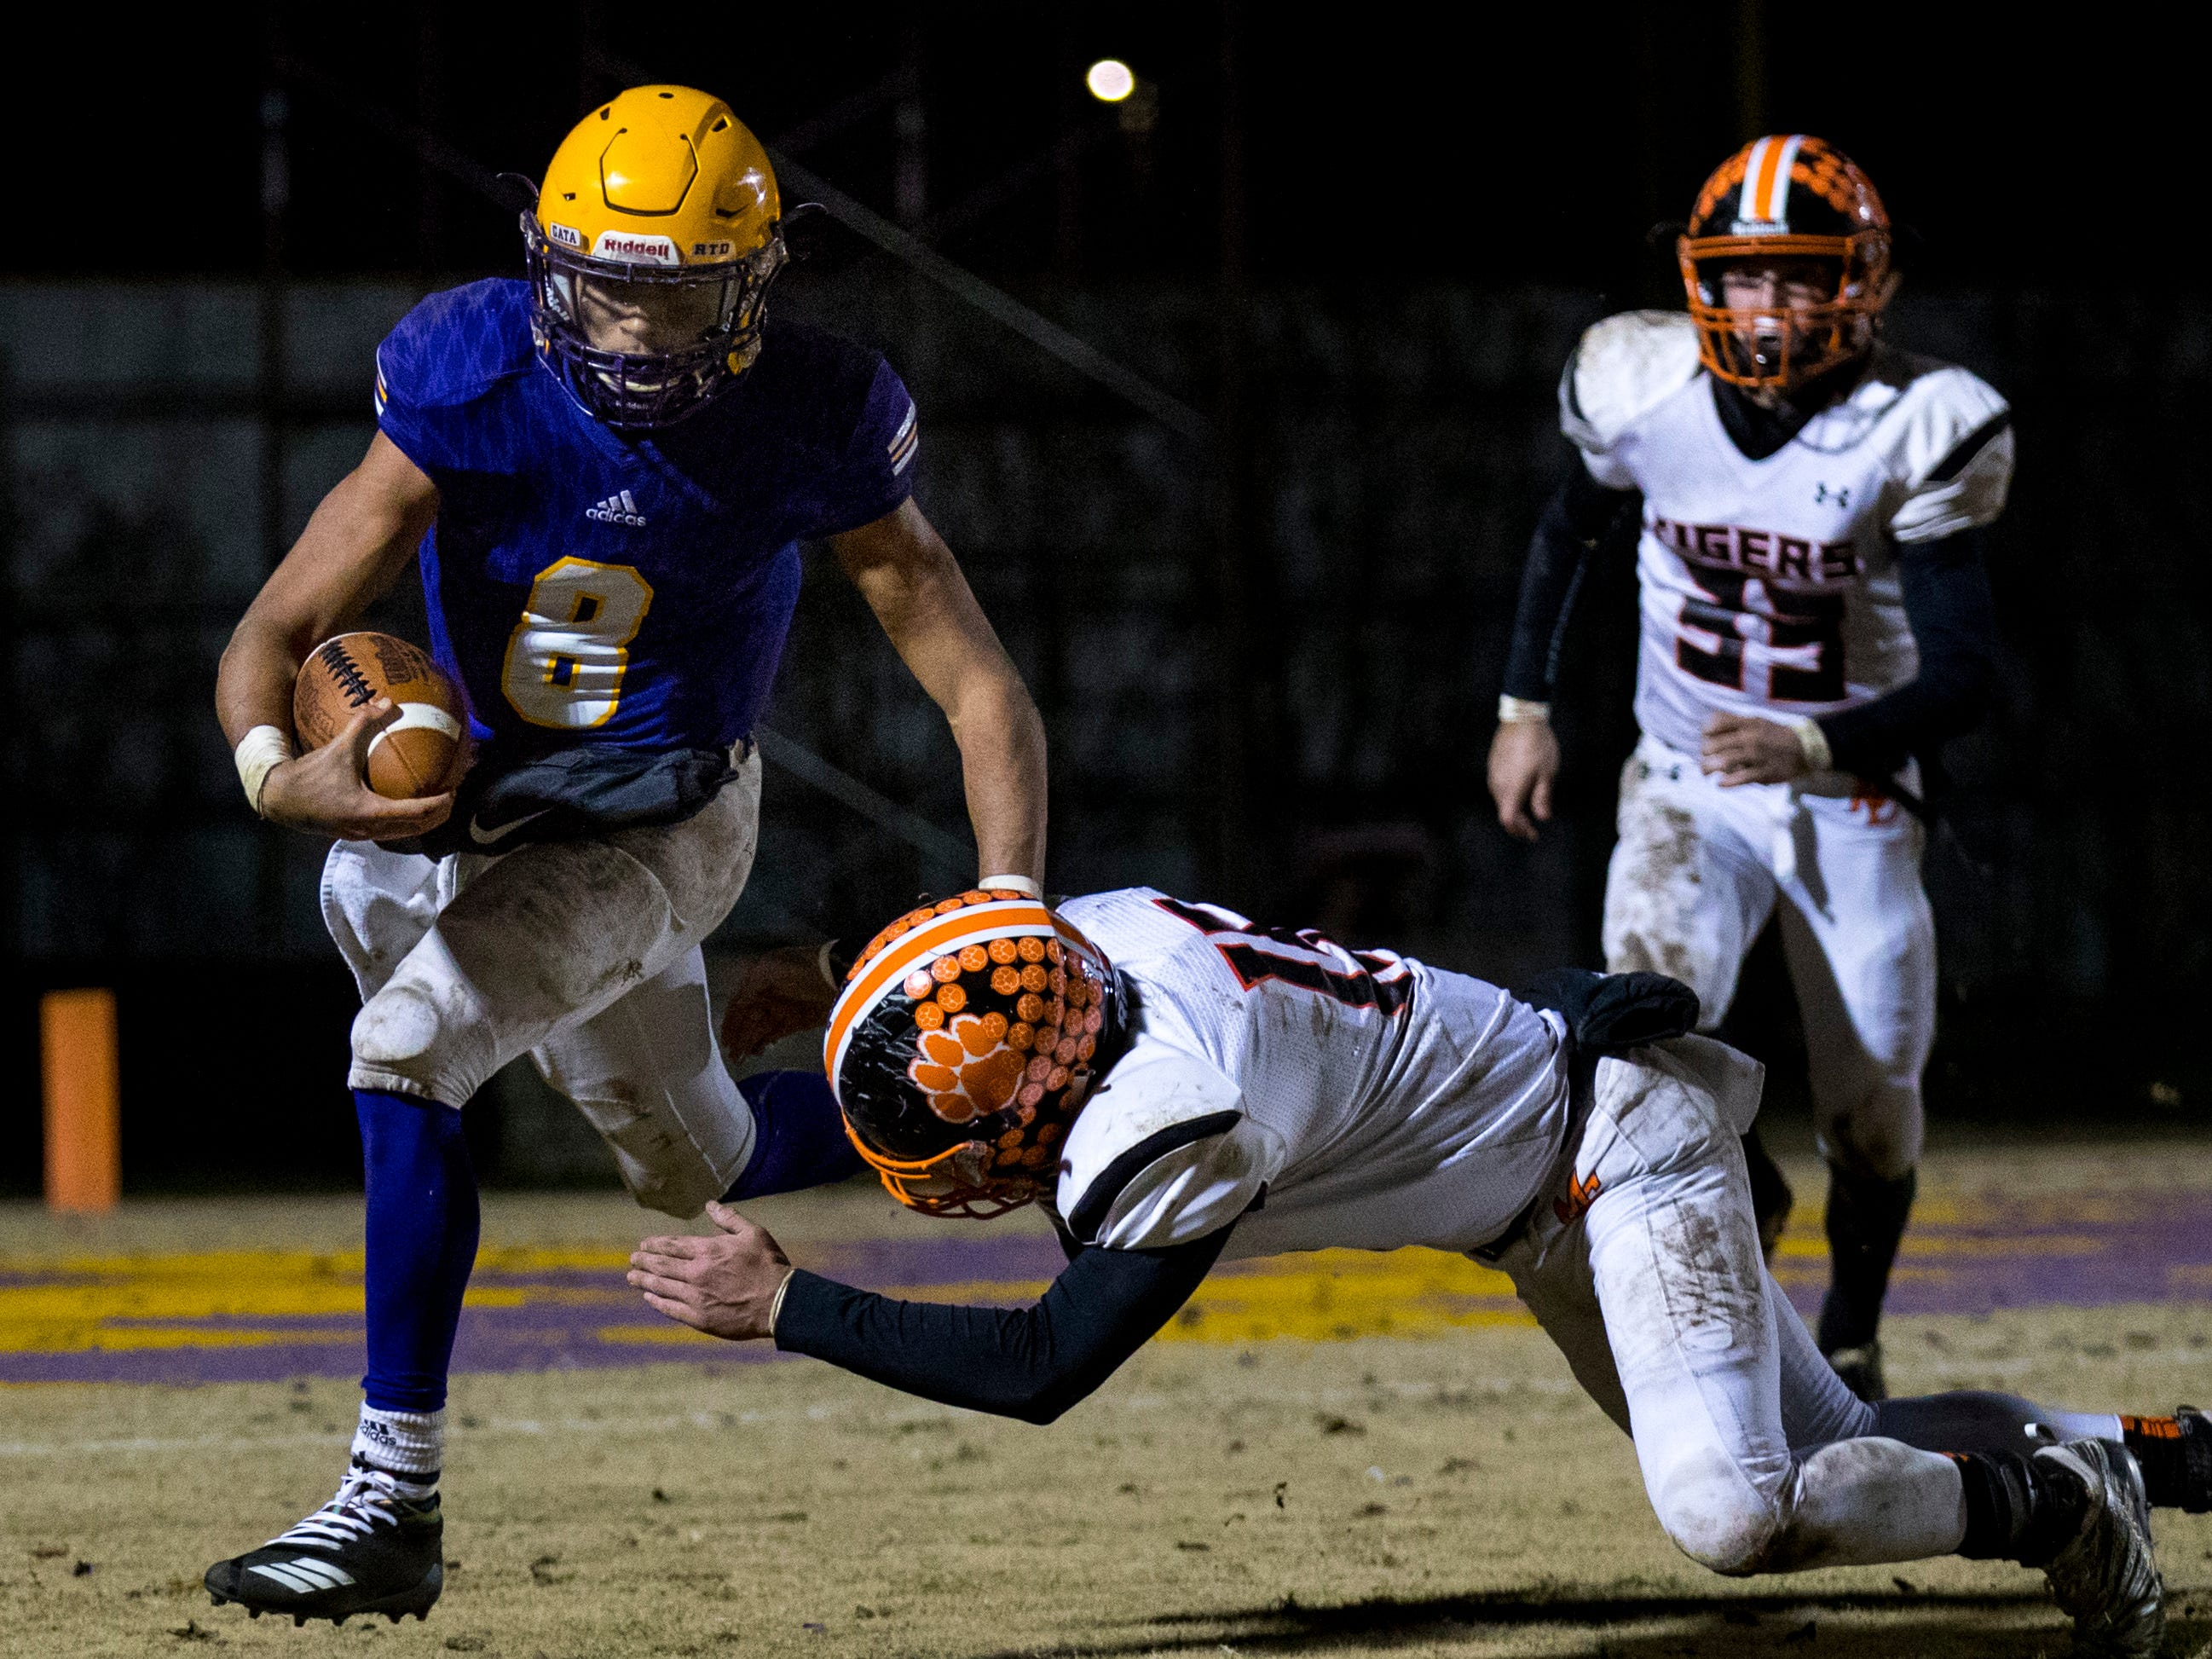 Trousdale County's Keyvont Baines (8) dodges a tackle during Trousdale County's game against Meigs County at Jim Satterfield Stadium in Hartsville on Friday, Nov. 23, 2018.